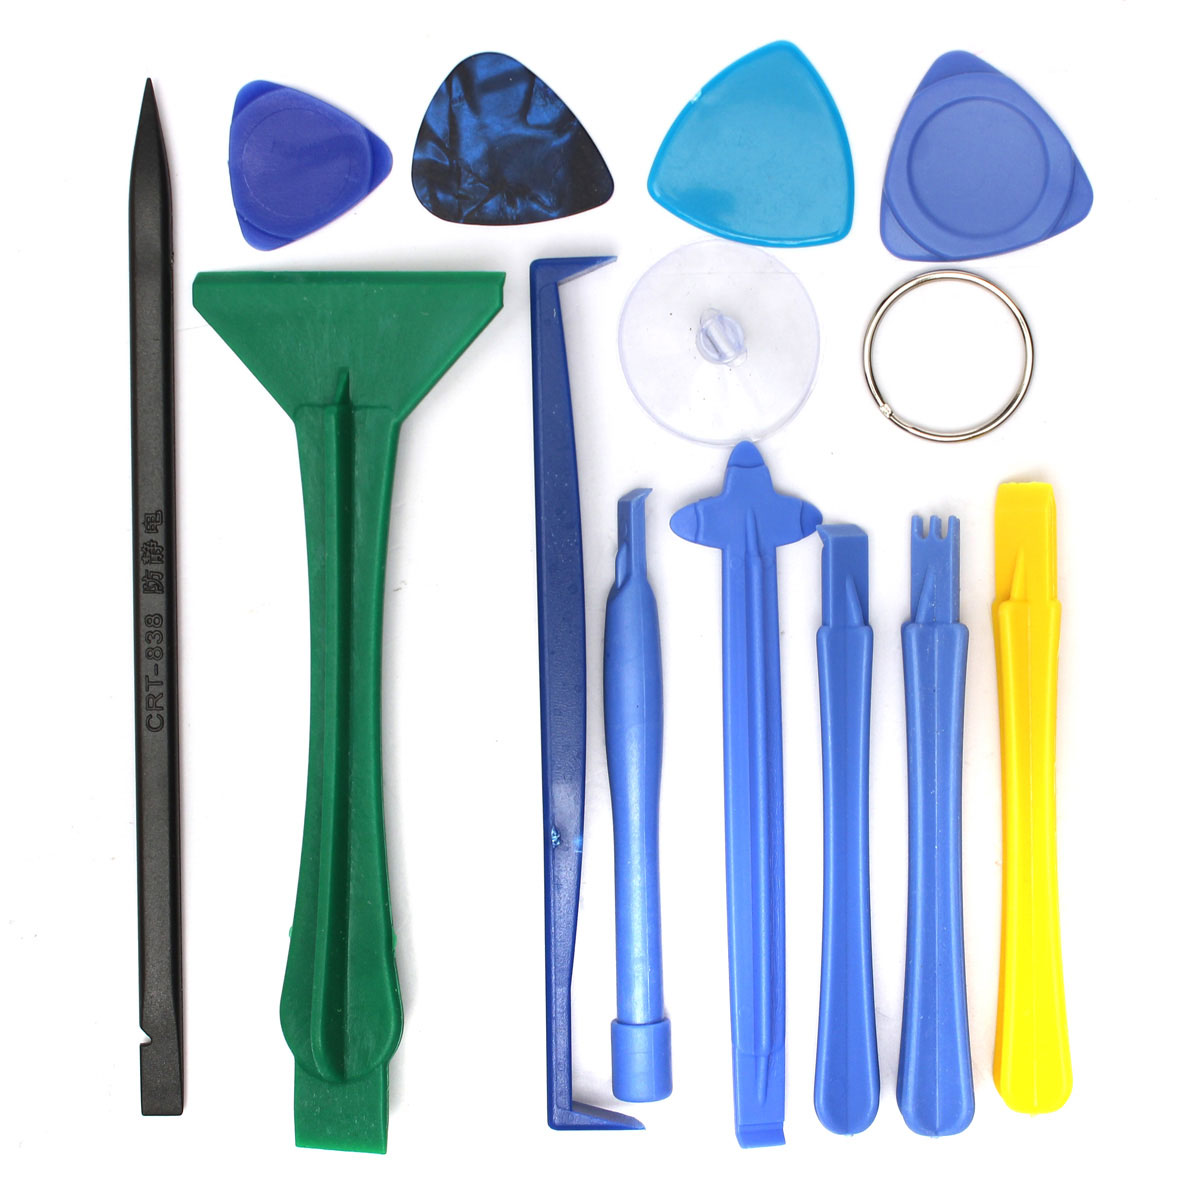 New Durable 13 in 1 Universal Smart Mobile Phone Repair Repairing tool Kit Set For iPhone Tablet Cell Phone Wholesale<br><br>Aliexpress